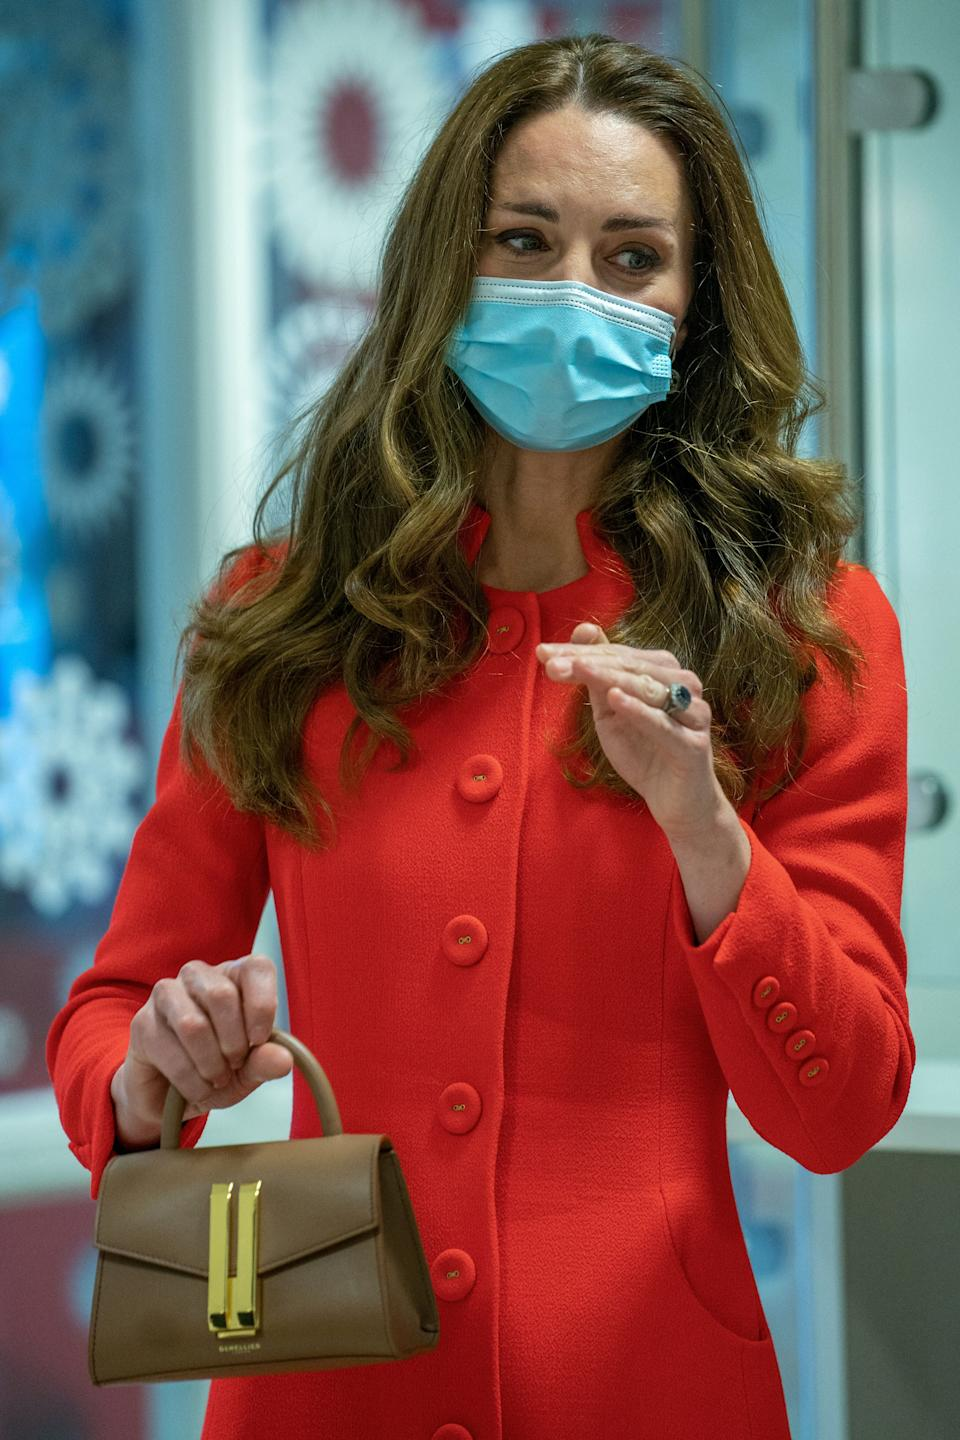 Britain's Catherine, Duchess of Cambridge gestures on arrival for a visit to meet staff and hear how the hospital uses art to benefit patients and staff, at Royal London Hospital Whitechapel in east London, on May 7 2021. (Photo by Arthur EDWARDS / various sources / AFP) (Photo by ARTHUR EDWARDS/AFP via Getty Images)